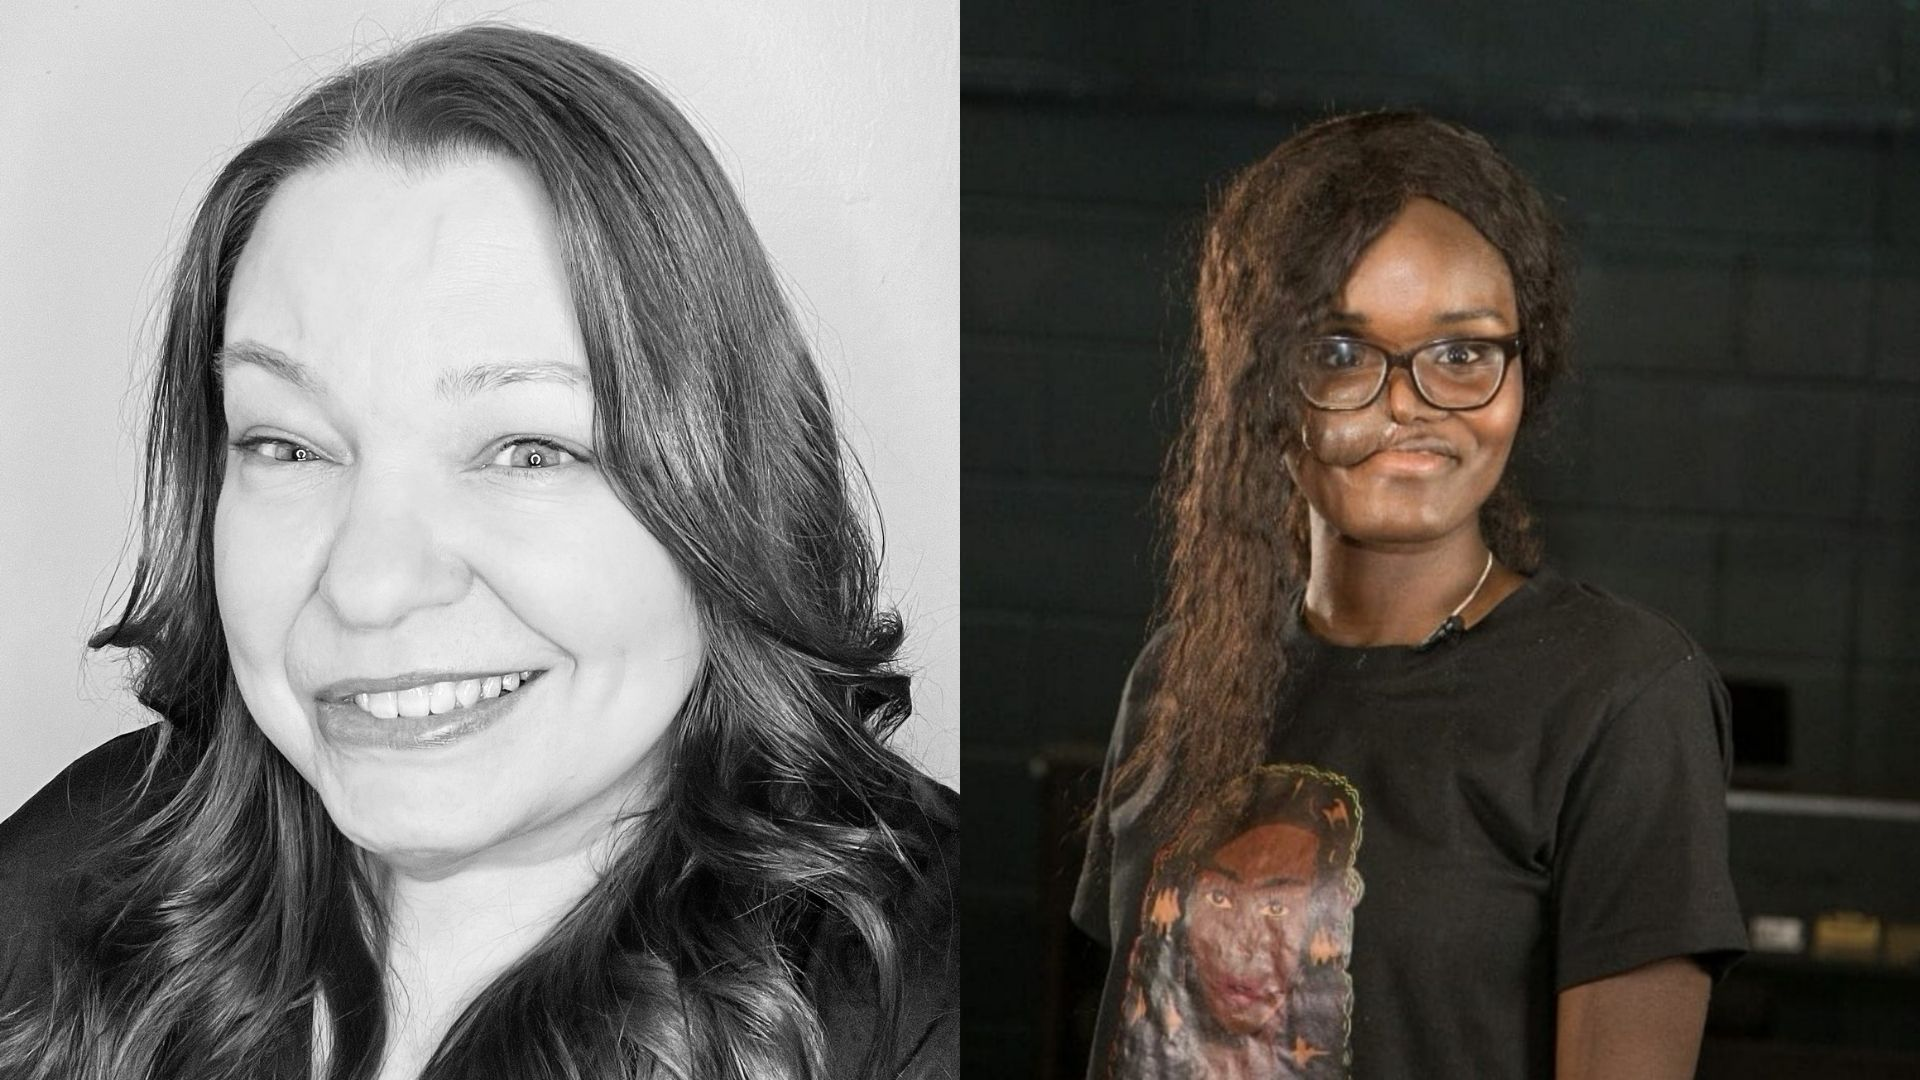 Left: a black and white image of Miranda Walker, a woman, 40s, who has some facial paralysis. Right: Crystal, a woman in her 20s, with a skin flap on her cheek. She's got long hair and glasses and is wearing a black t-shirt.